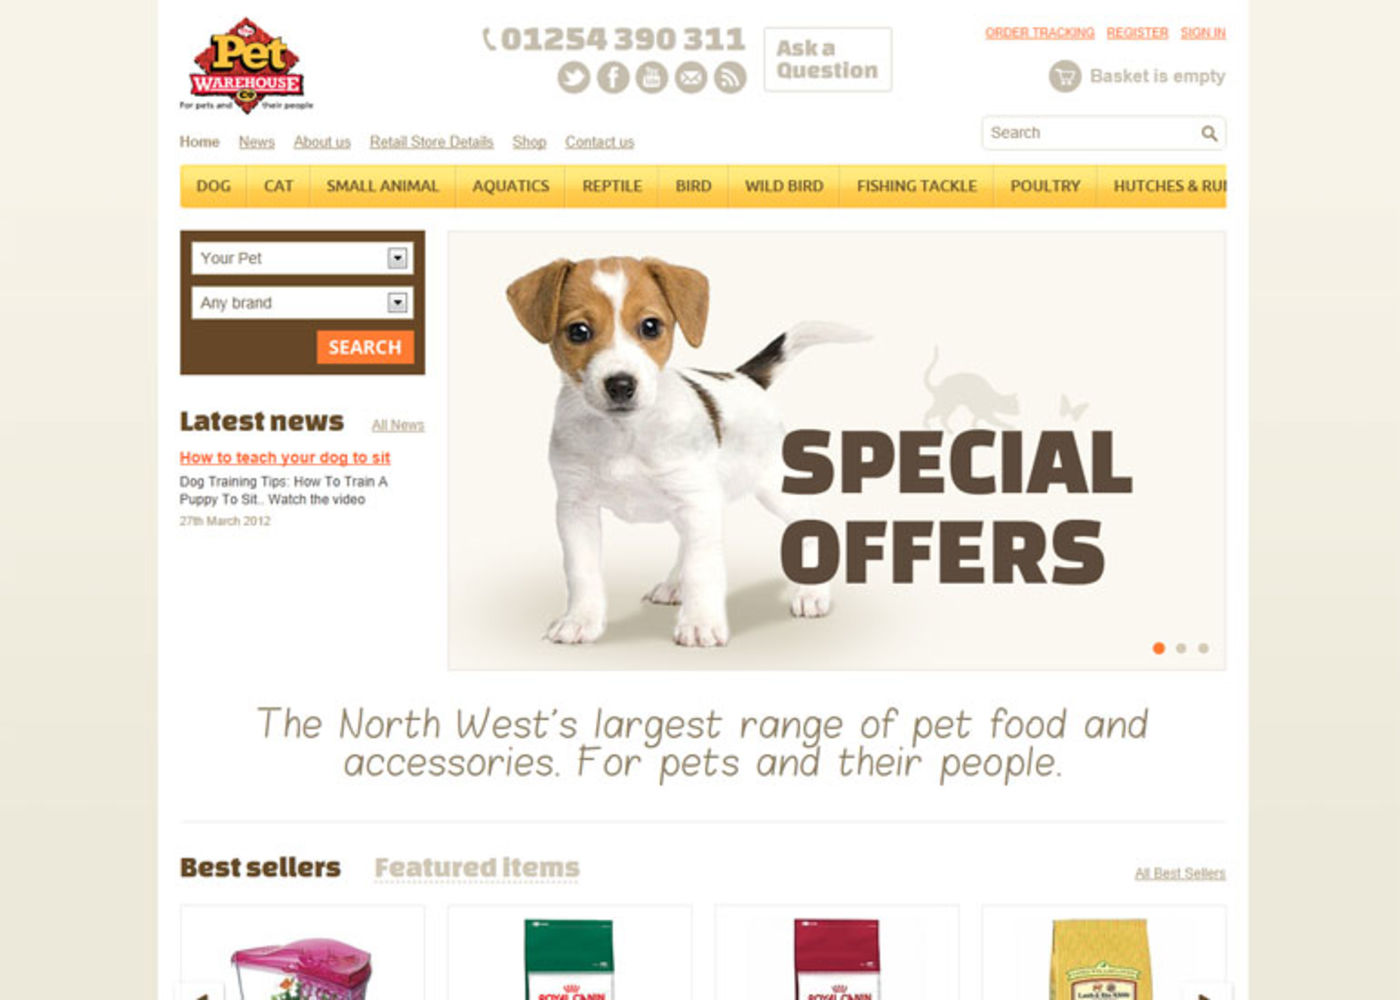 The Pet Warehouse Homepage header - Pet Warehouse